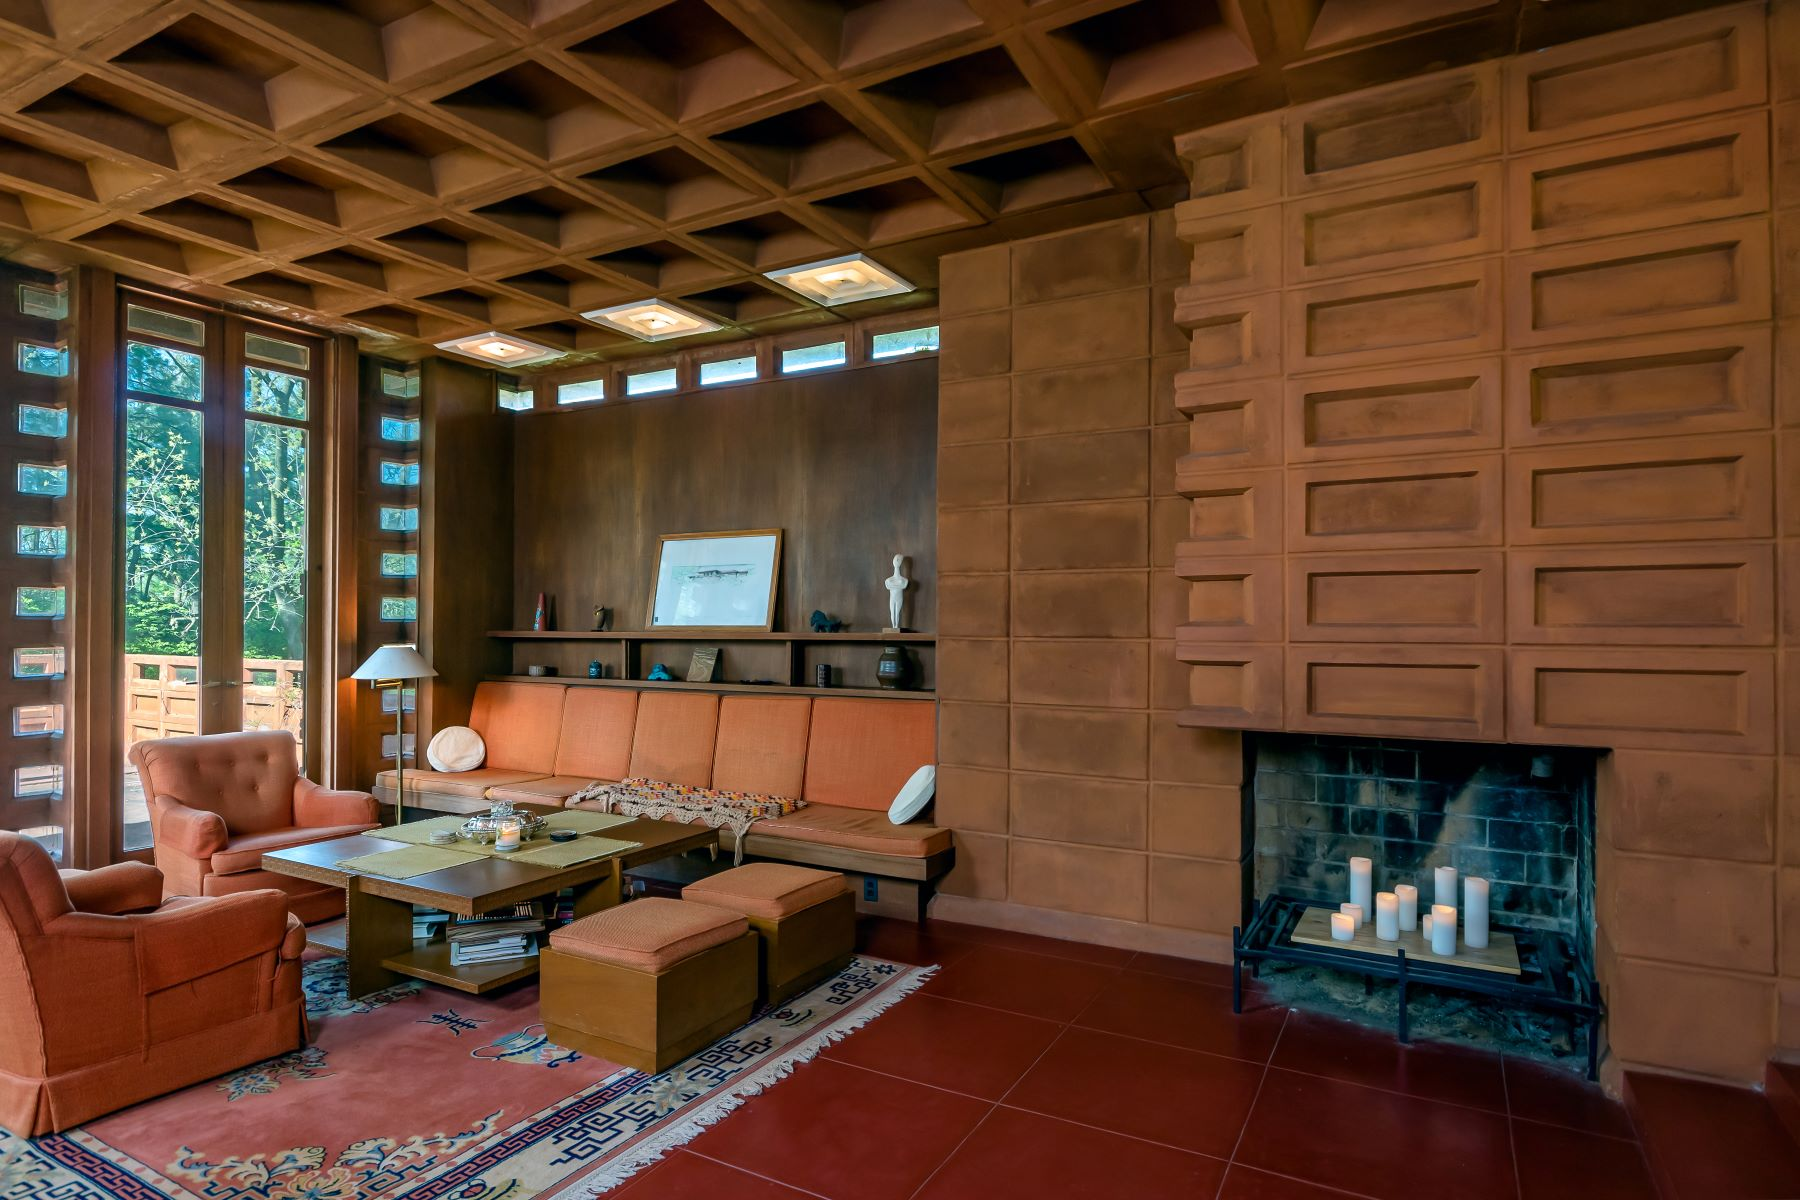 Additional photo for property listing at Frank Lloyd Wright residence 865 Masonridge Road Town And Country, Missouri 63141 United States